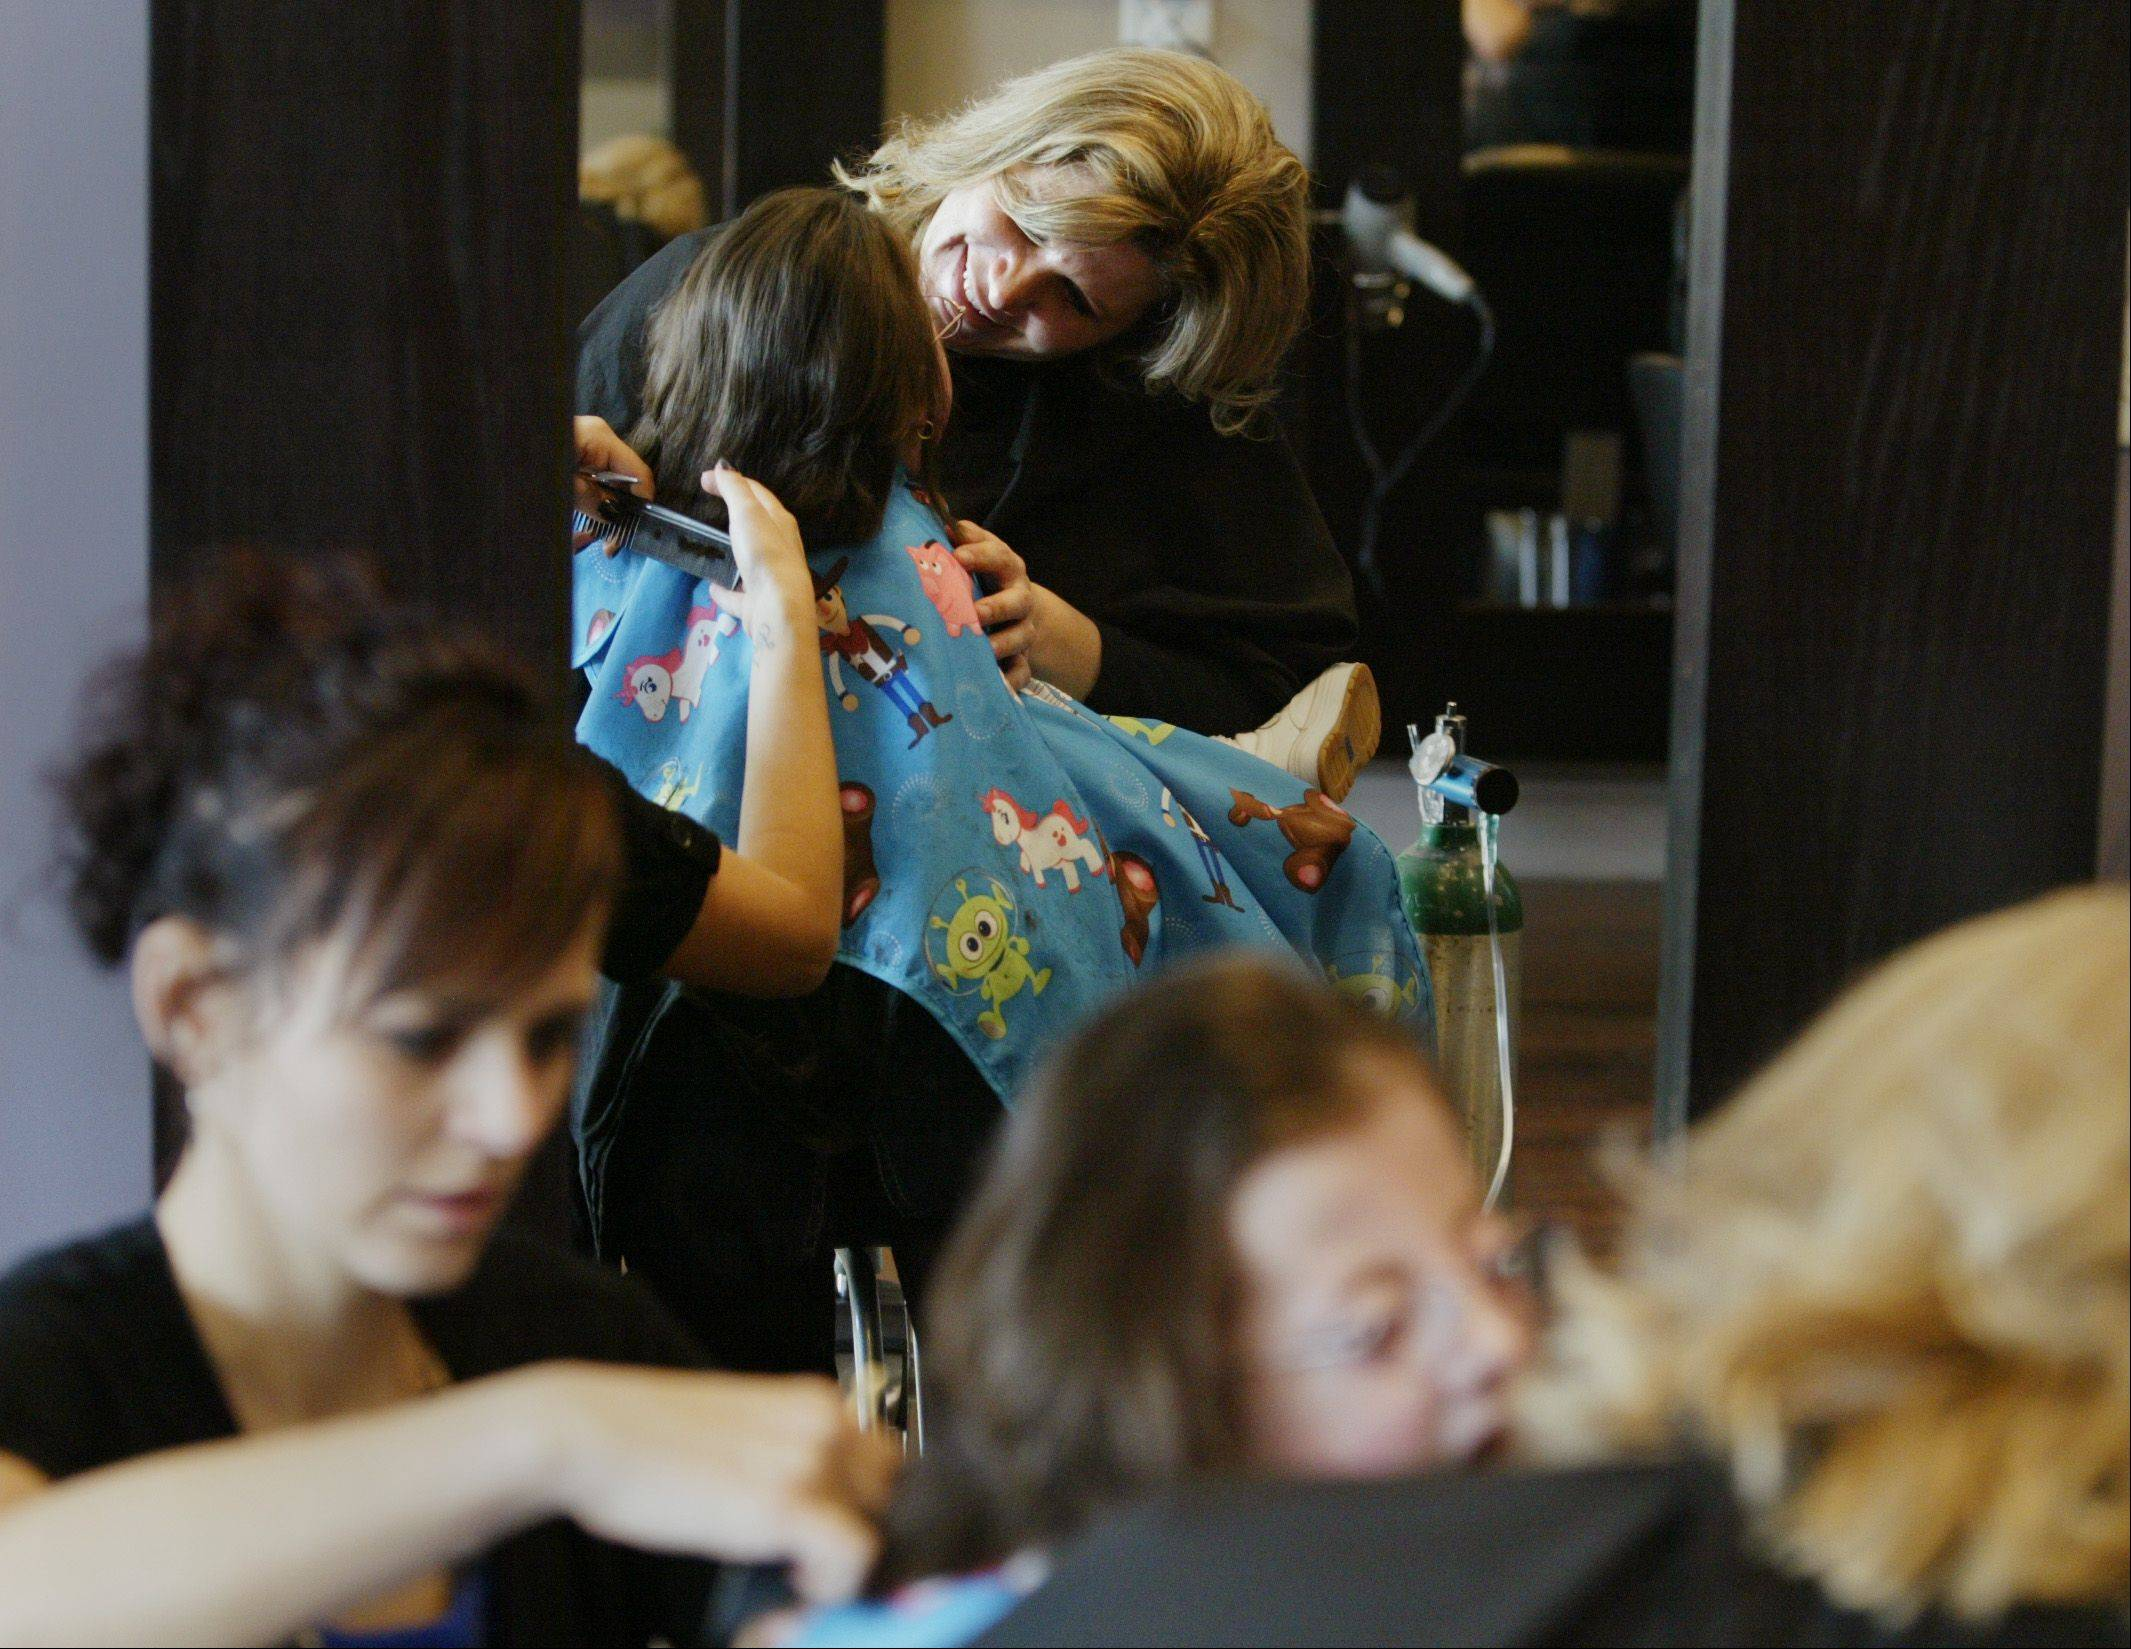 Kelly Whistler grins as she watches daughter Kayli get her hair cut by stylist Gina Coleman Friday at Blush Salon in Crystal Lake. Kayli, who has Trisomy 18, is donating her hair to Wigs for Kids.